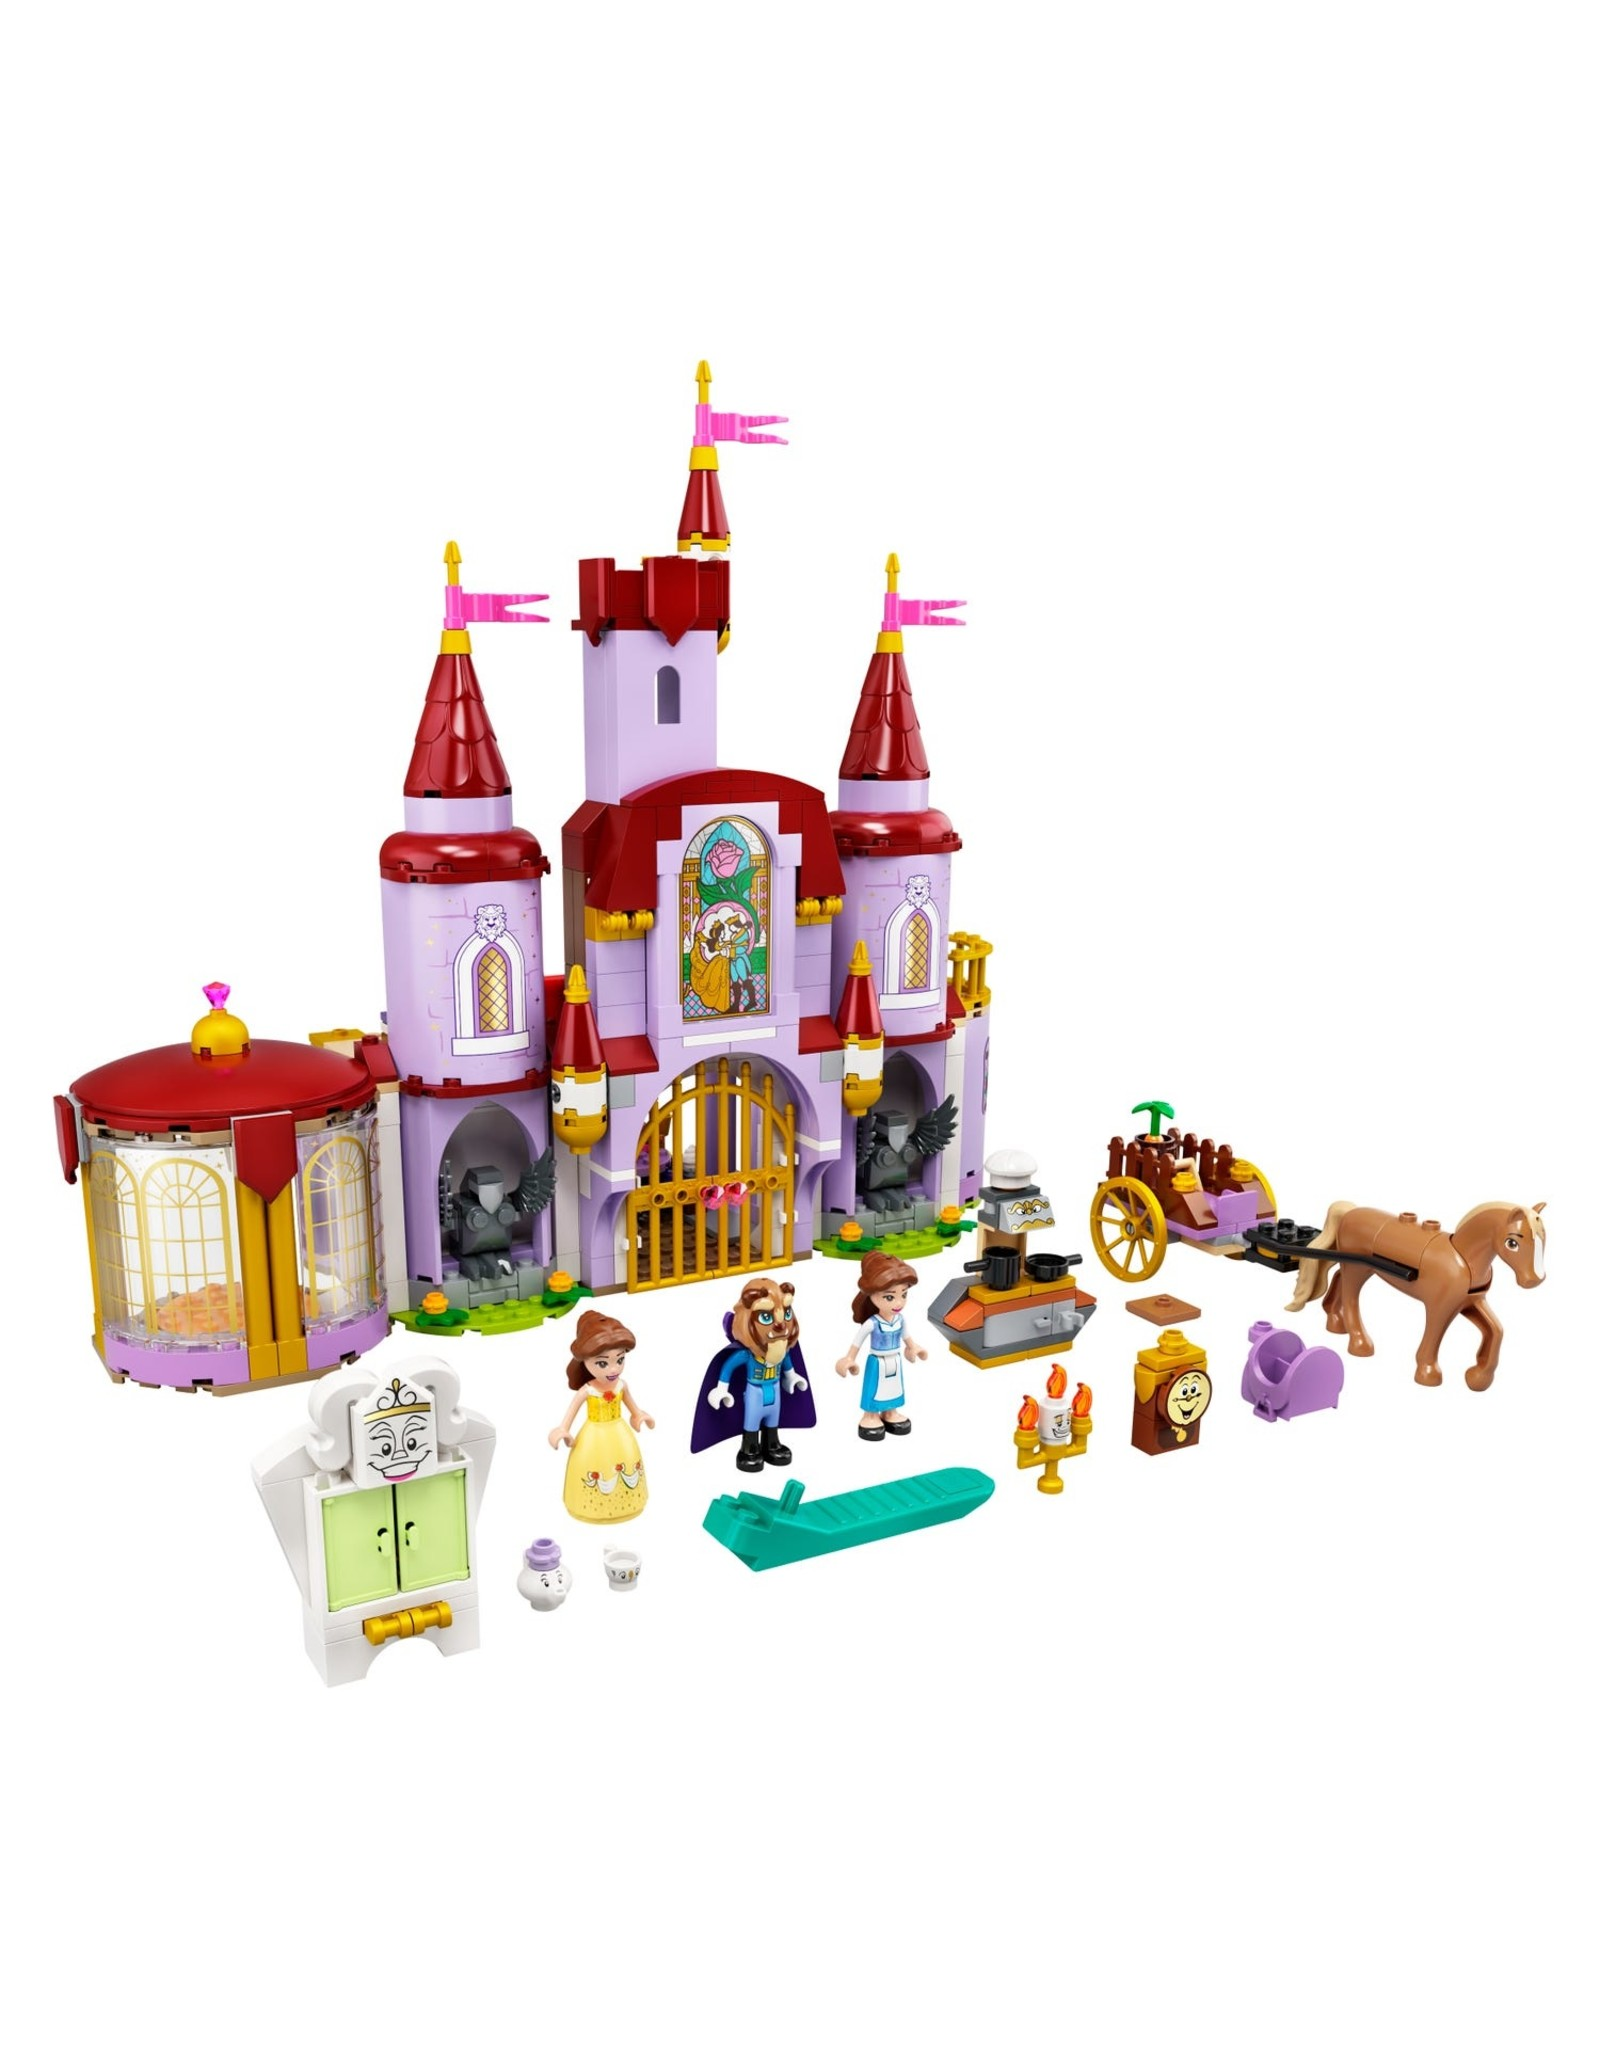 Lego Belle and the Beast's Castle